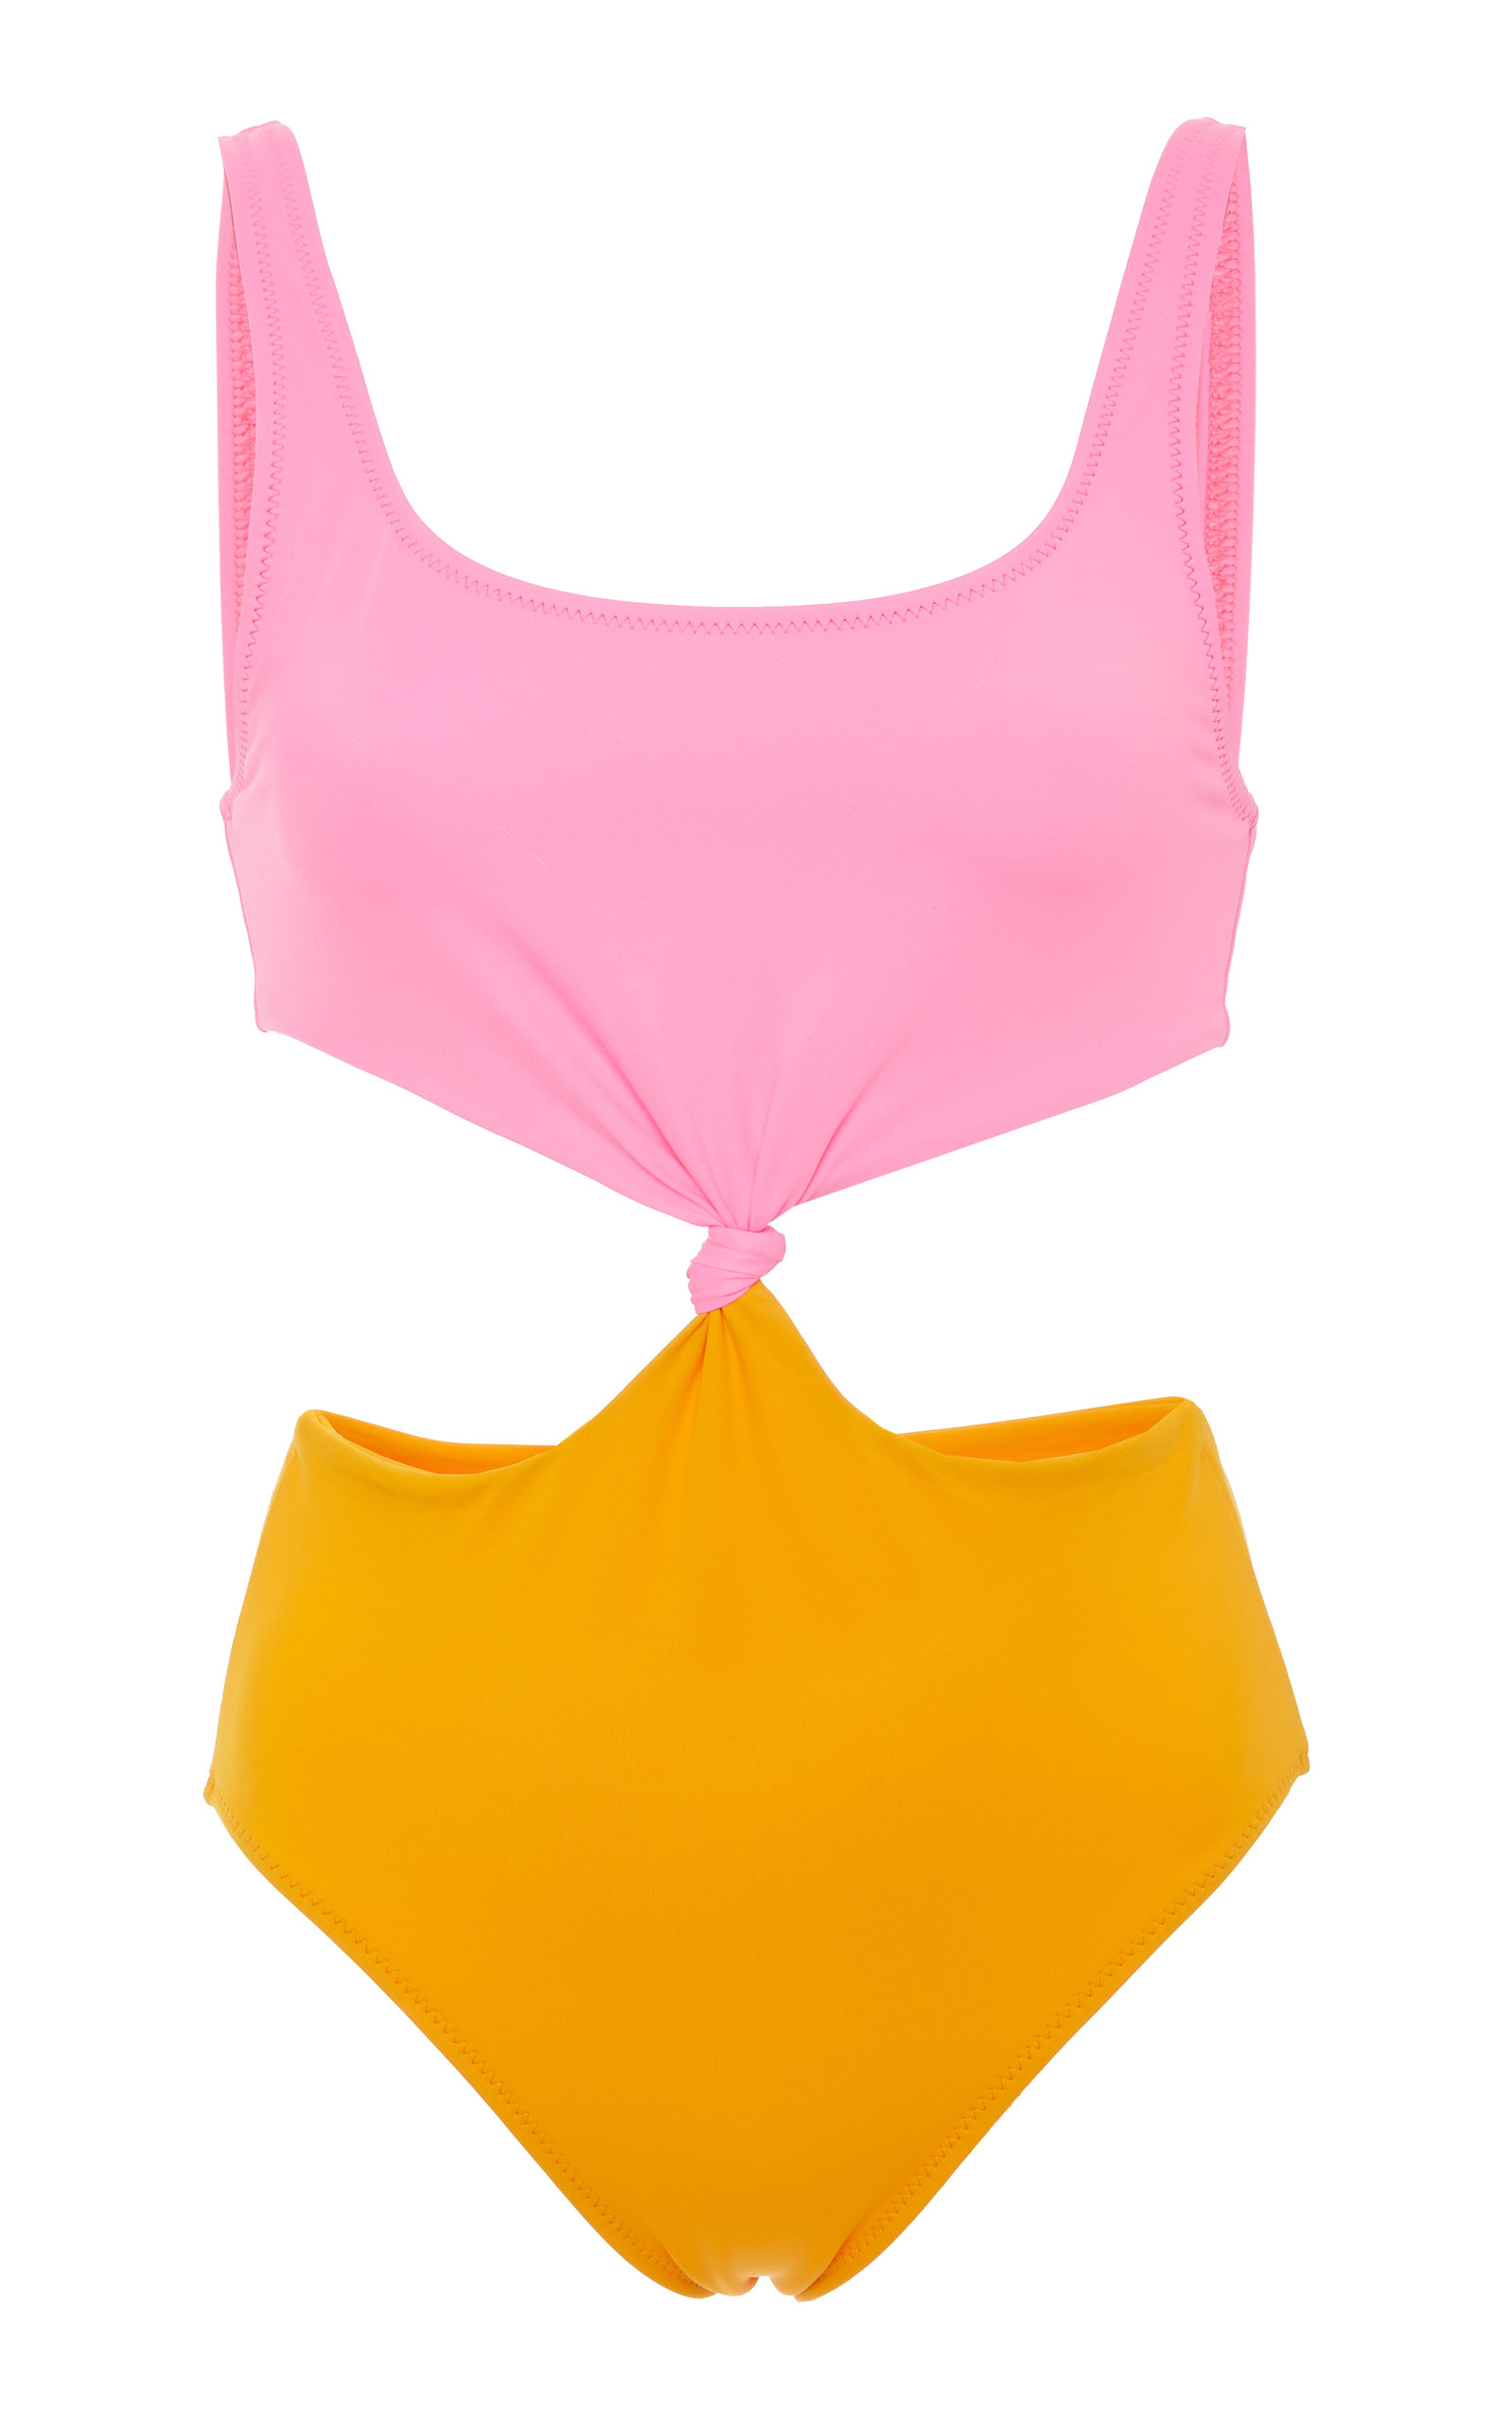 Bailey Knotted Color-Block One Piece Solid & Striped Discount Browse Cheap Shopping Online LJYMBnl